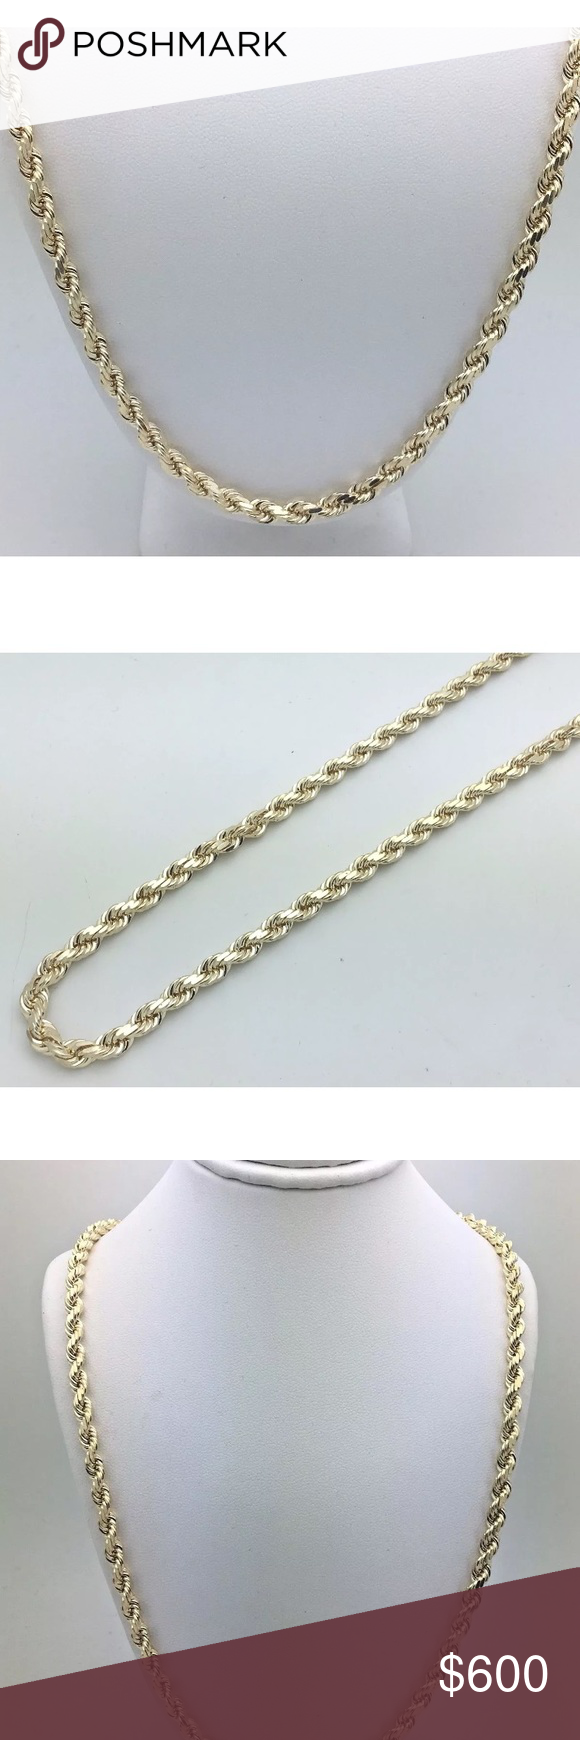 Solid Gold Rope Chain 5mm 24 Nice Mens Necklace Gold Rope Chains Men S Necklace Necklace Brands